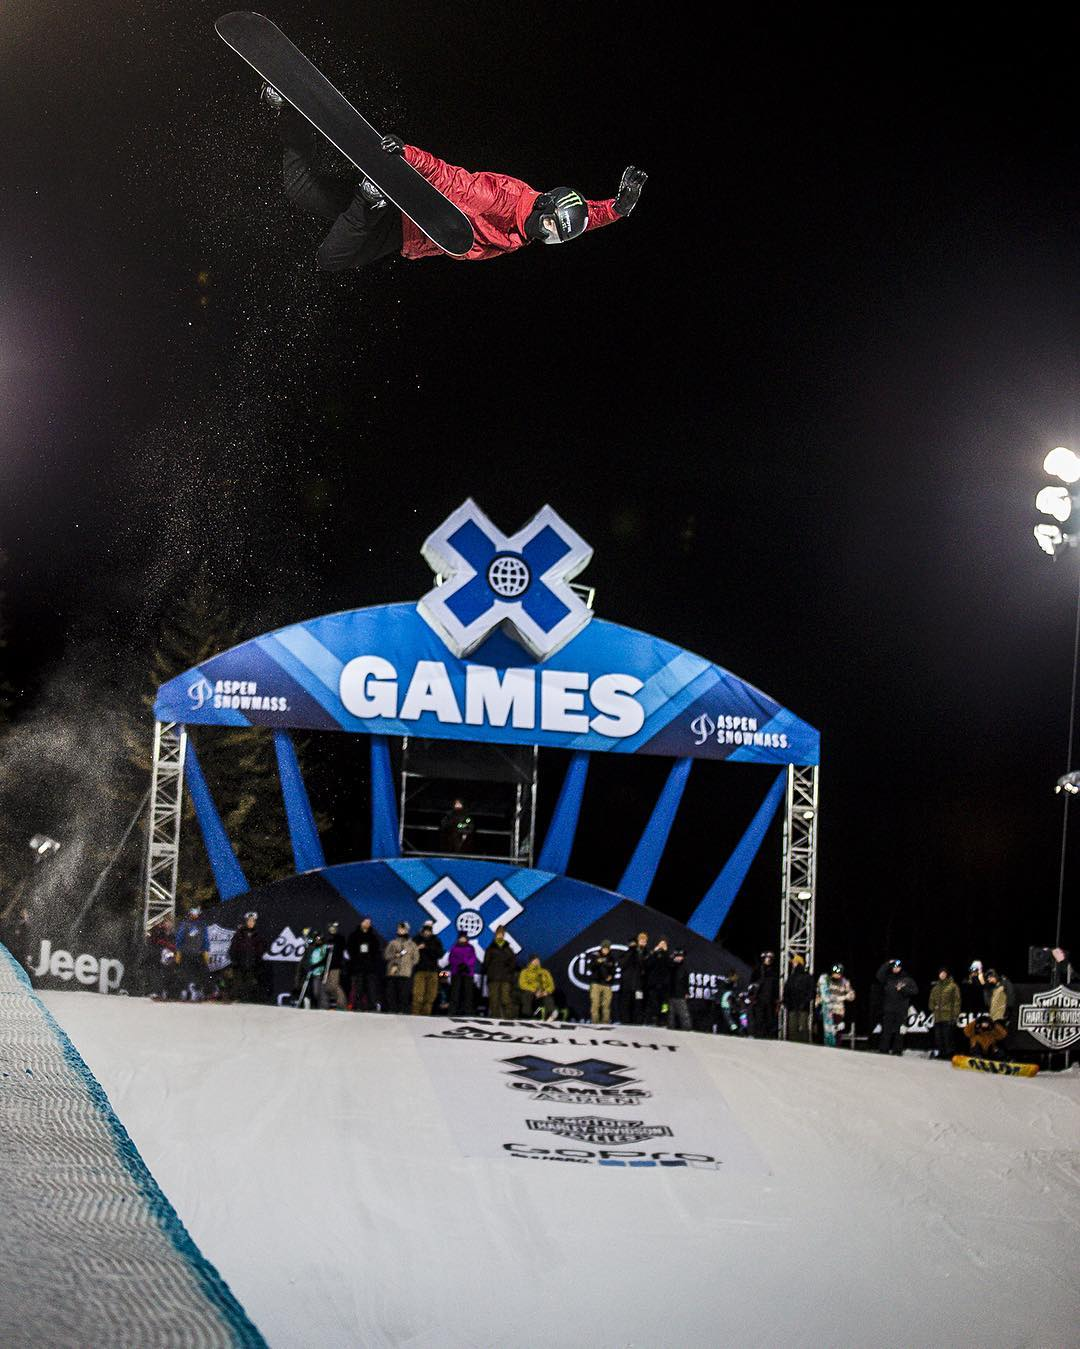 123 athletes from 17 different countries and 16 different states will compete at #XGamesOslo! (